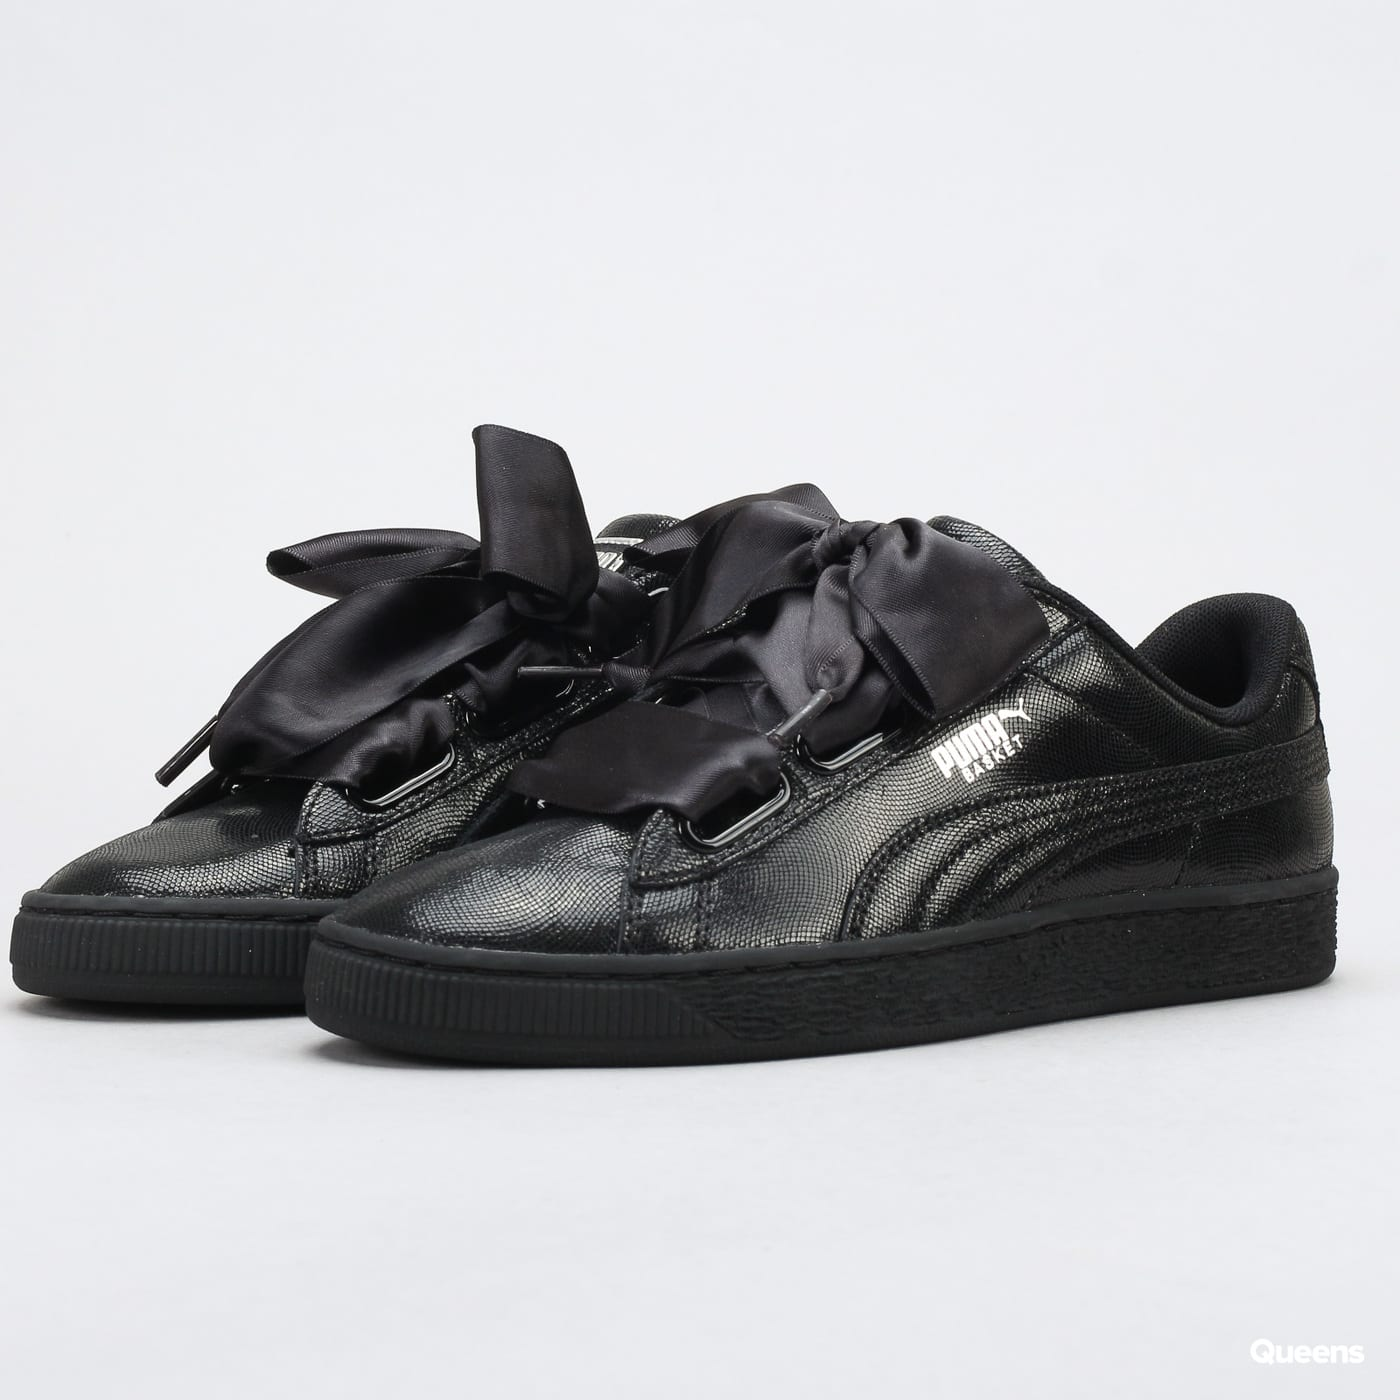 san francisco 6b306 f9413 Puma Basket Heart NS Wn's puma black - puma black